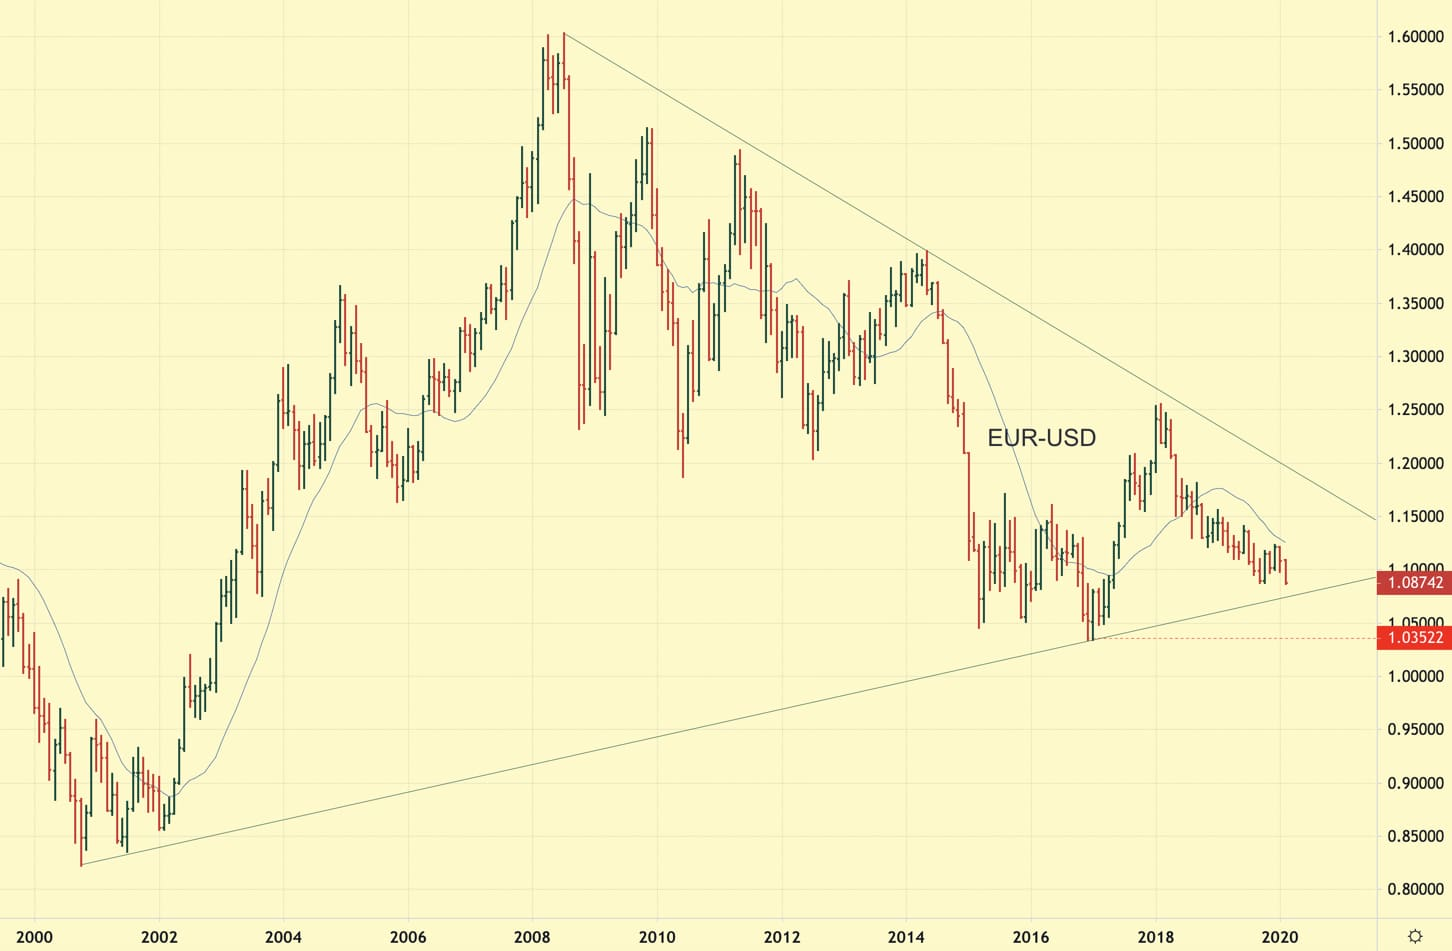 Image shows EURUSD monthly chart in a downtrend with 20 period moving average and support trend line